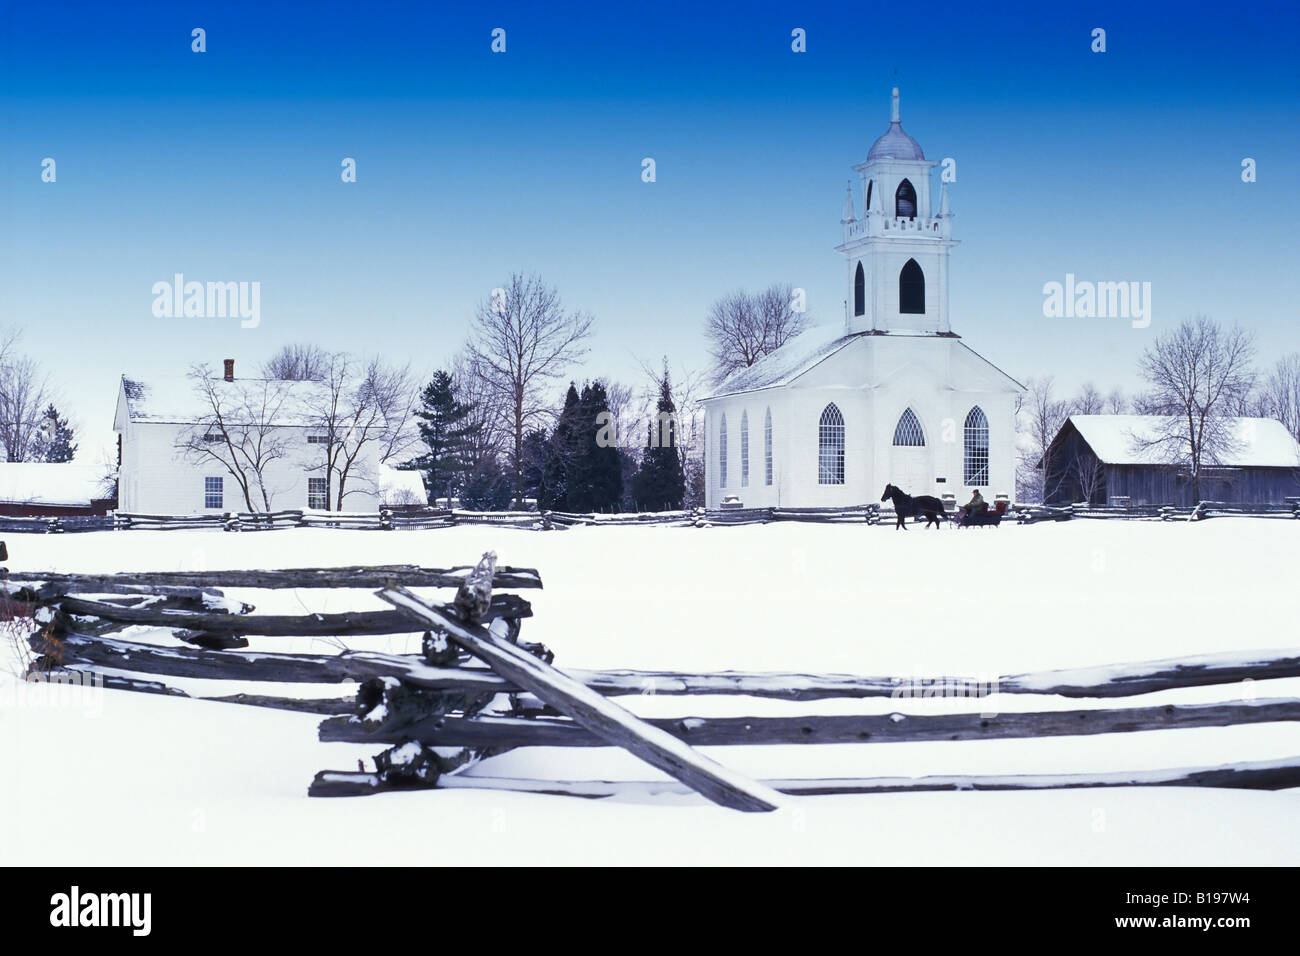 Horse Drawn Sleigh, Upper Canada Village, Parks of the St. Lawrence, Morrisburg, Ontario, Canada Stock Photo